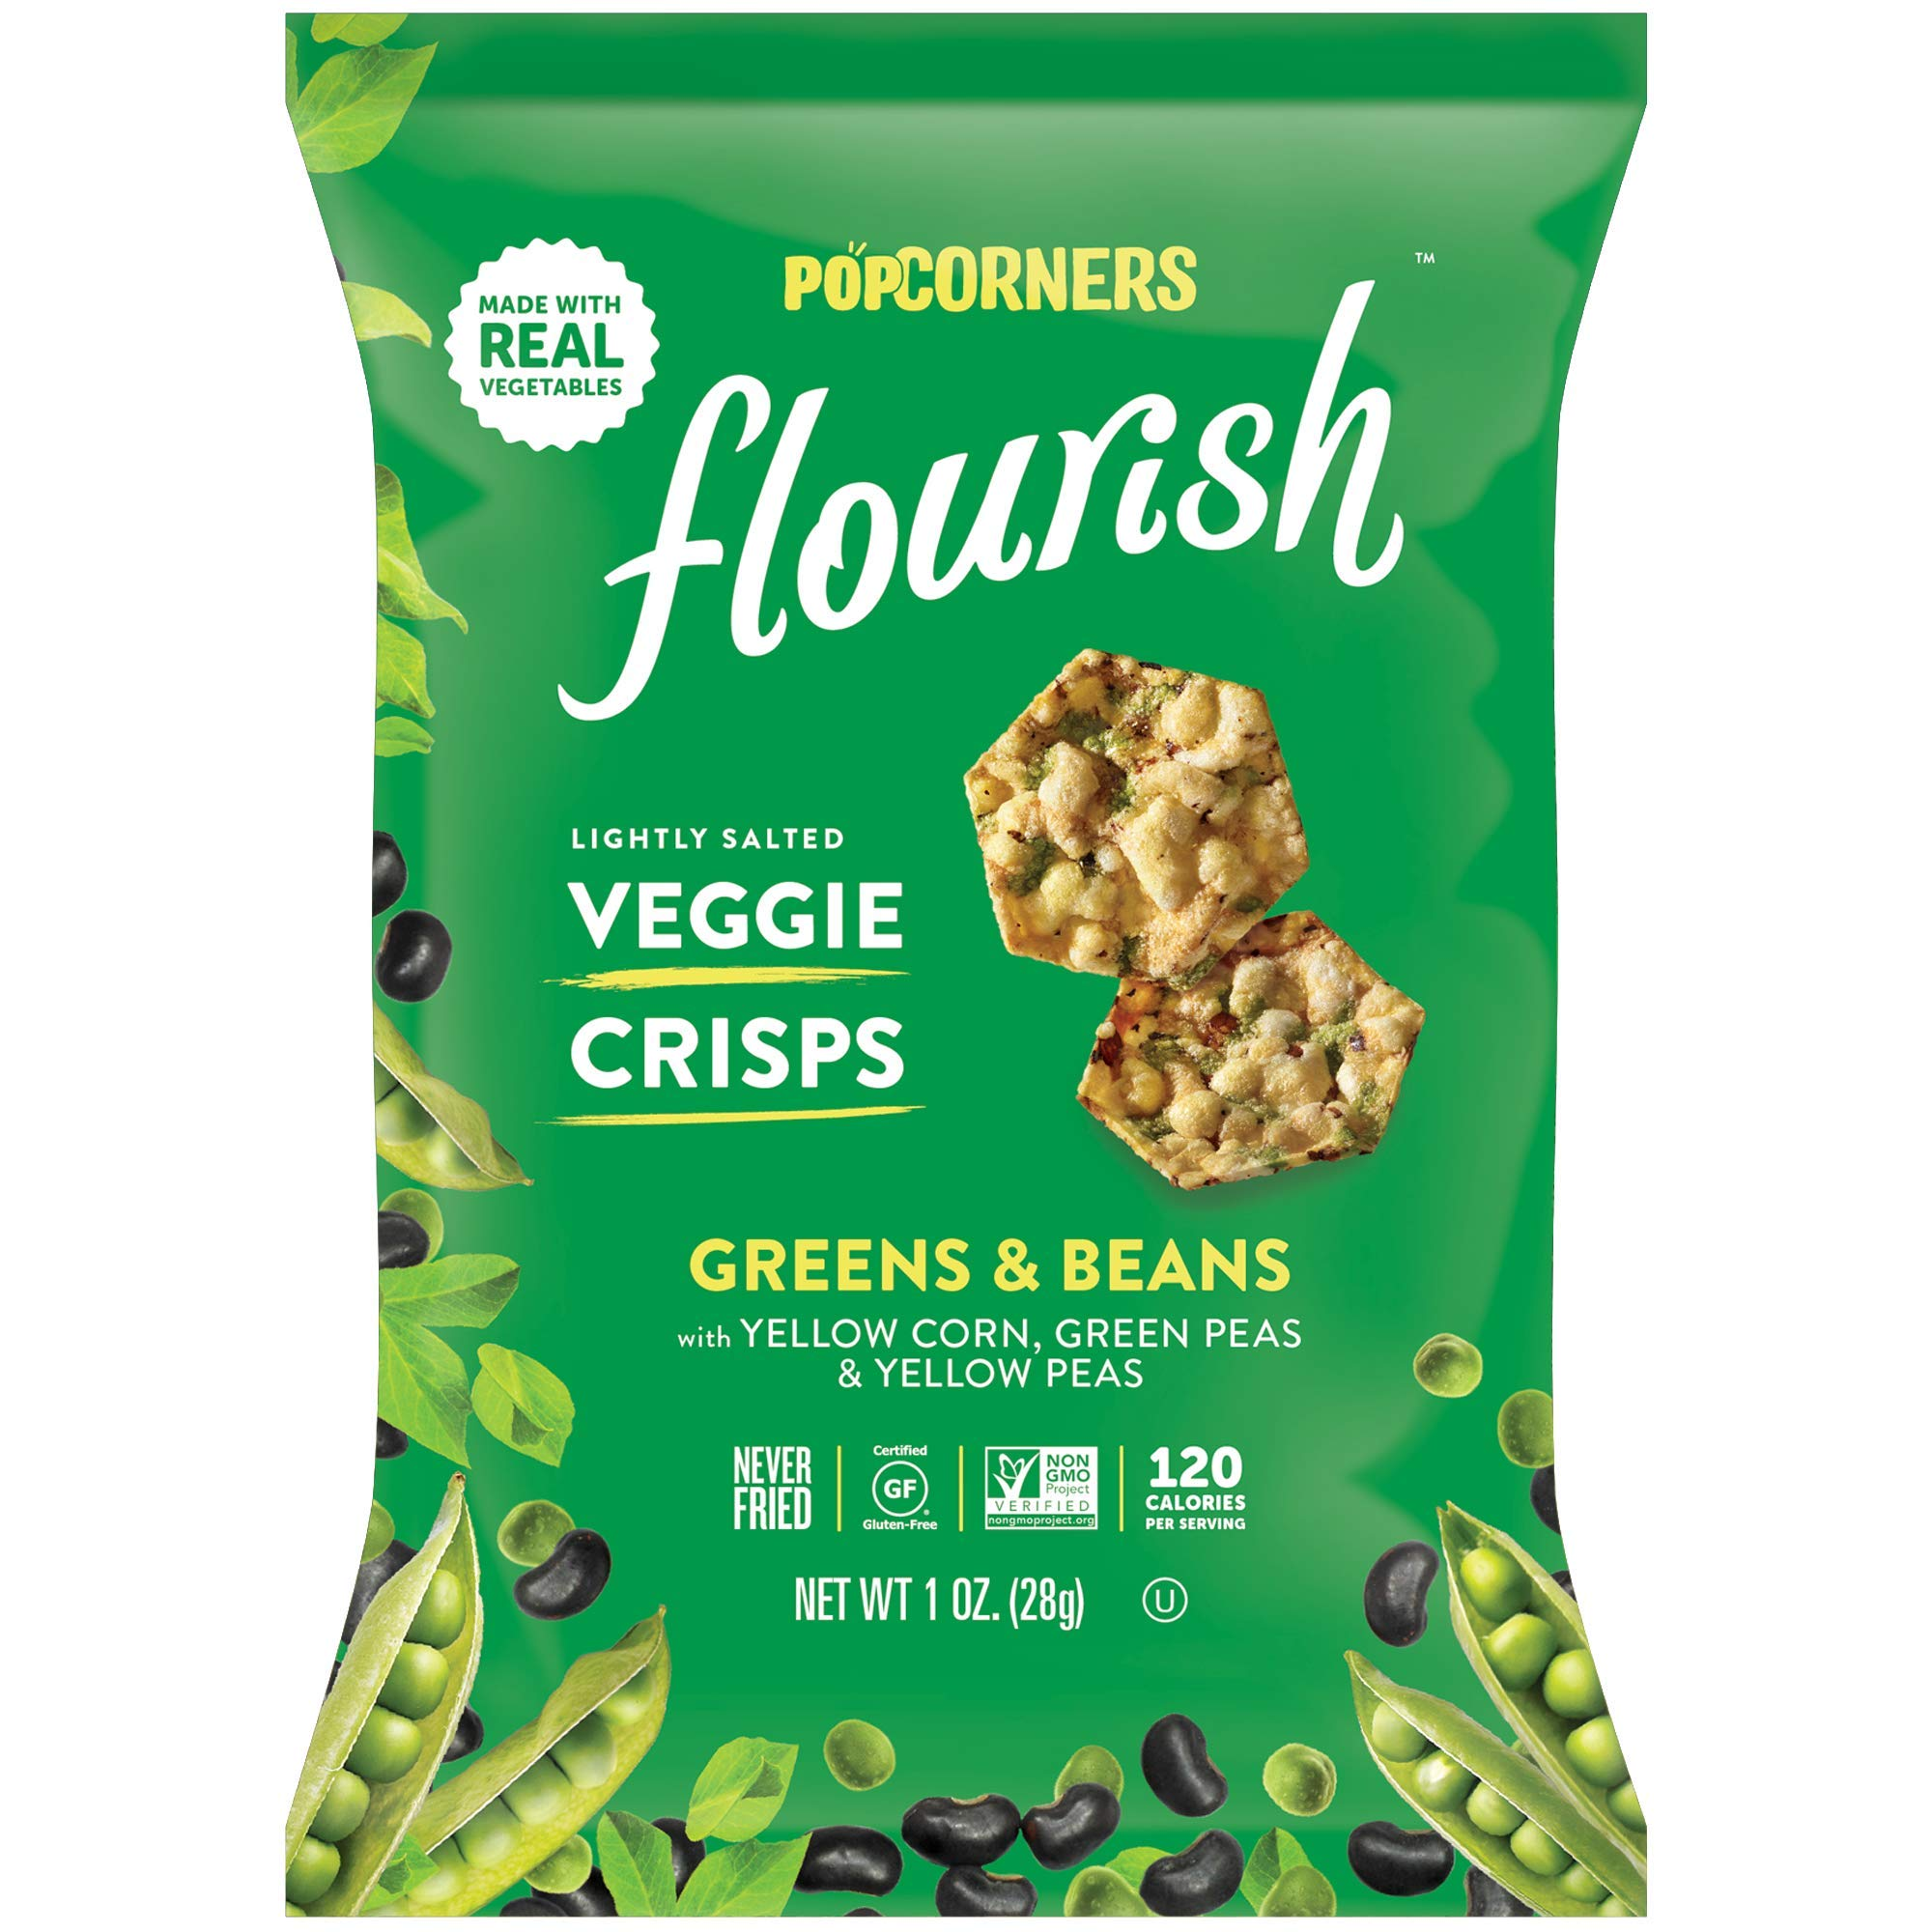 Popcorners Flourish Greens & Beans Veggie Crisps | Plant-Based Protein, Gluten Free Snacks | (24 Pack, 1 oz Snack Bags) by Popcorners